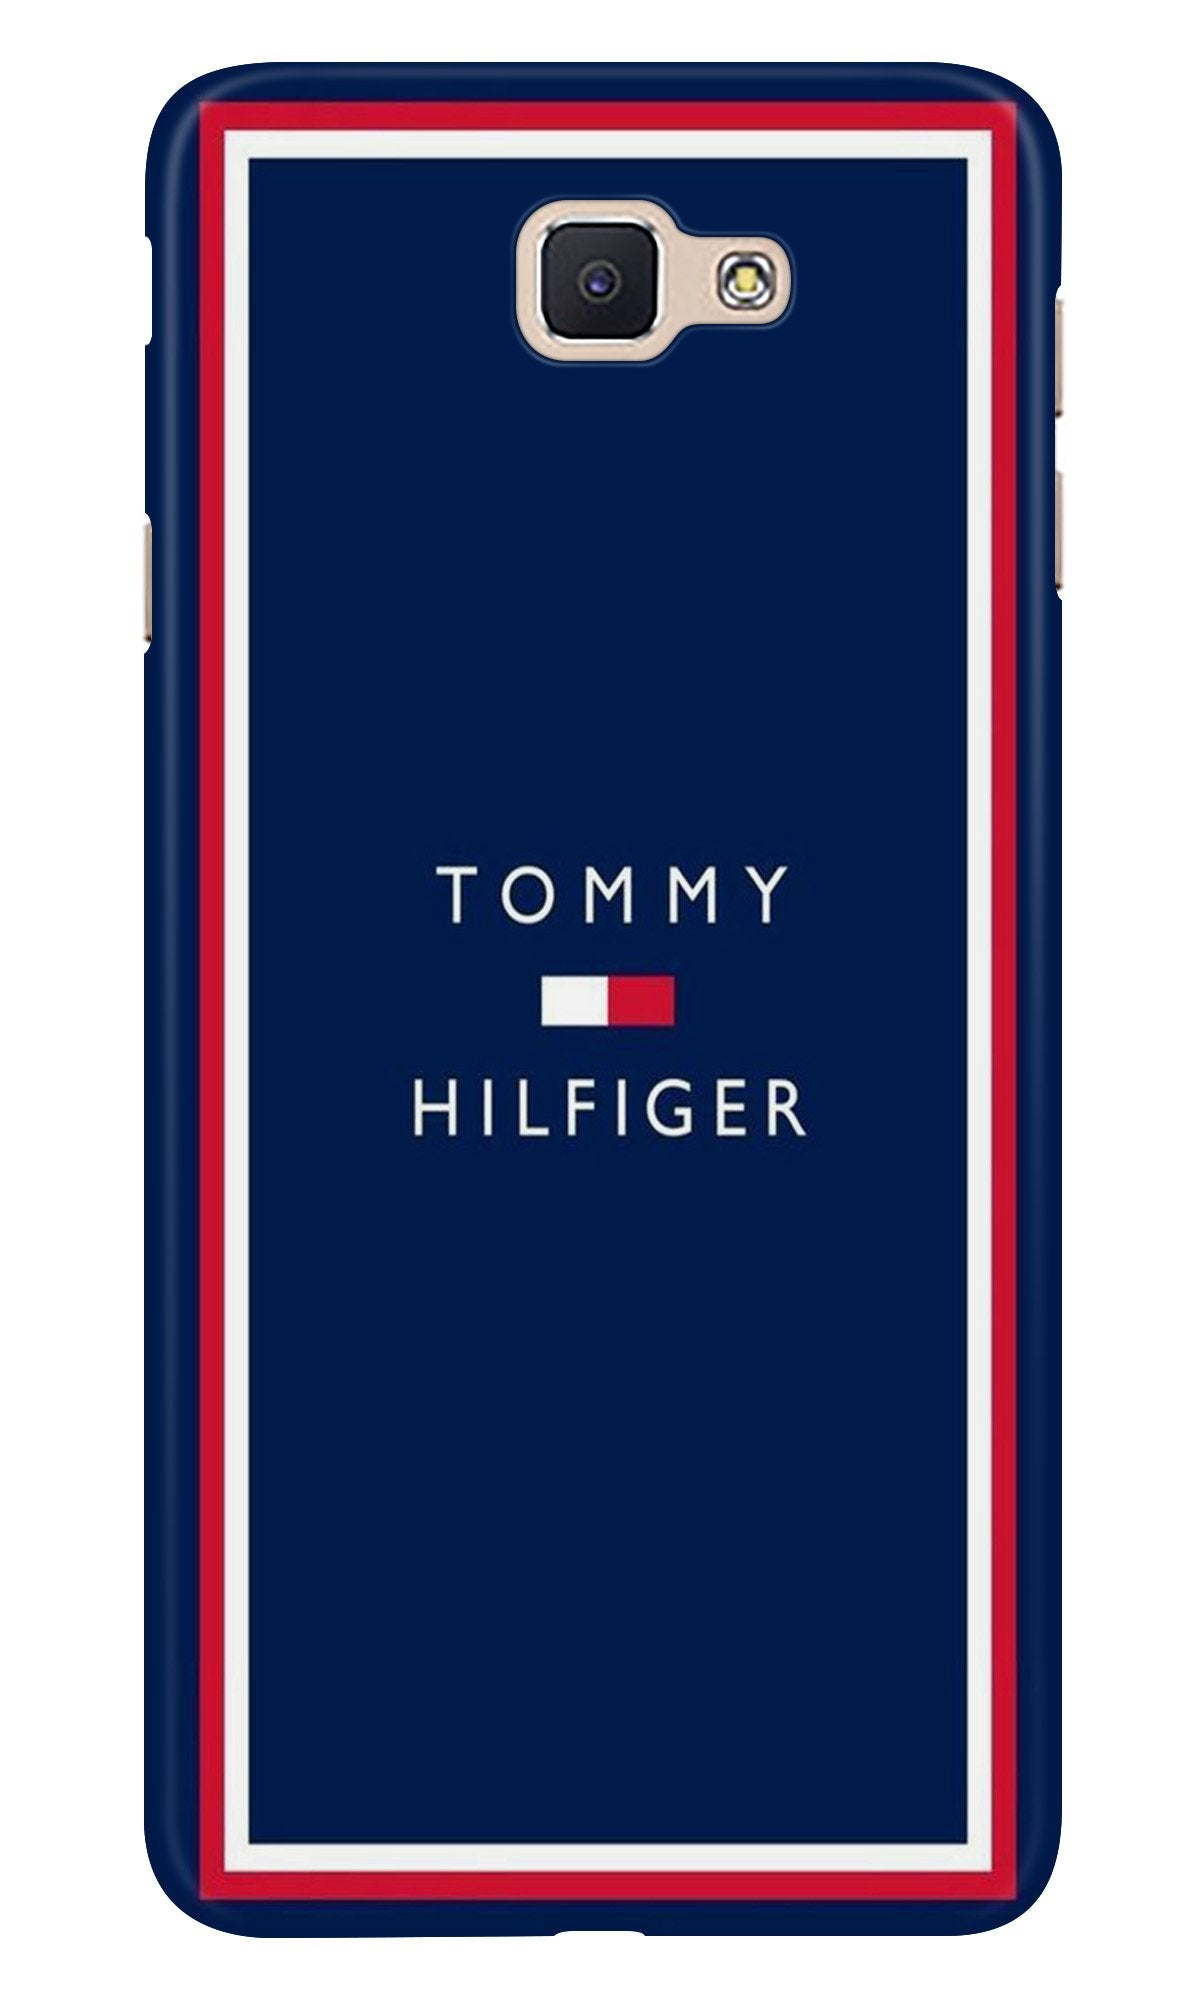 Tommy Hilfiger Case for Samsung Galaxy J5 Prime (Design No. 275)